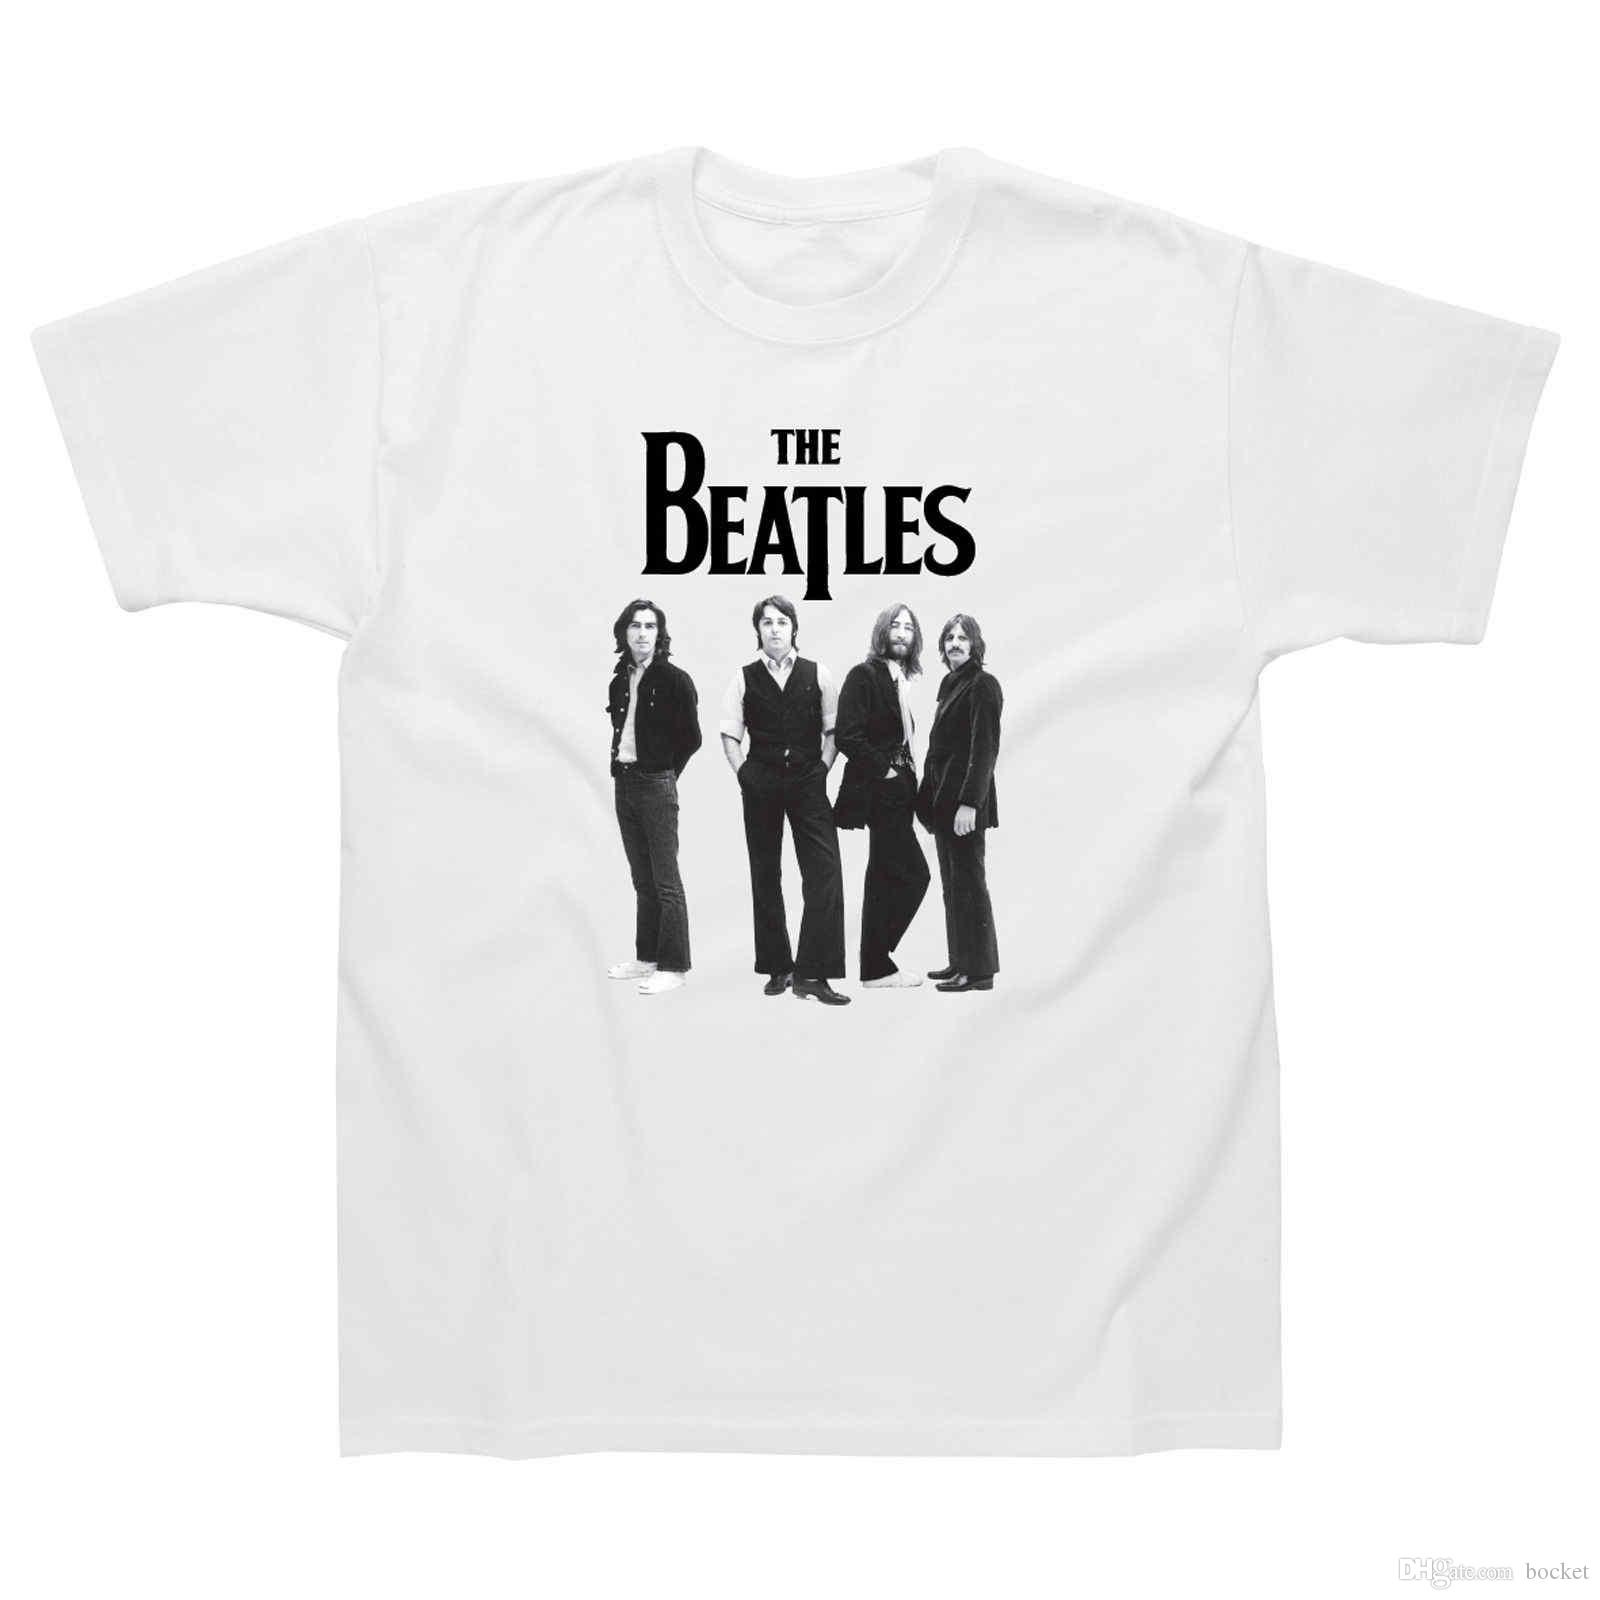 cc957cfd The Beatles Standing Photo T Shirt Official Mens White Classic Rock Music  Tee Cool Tee Shirts Cheap Business Tee Shirts Printing From Tshirt4you, ...